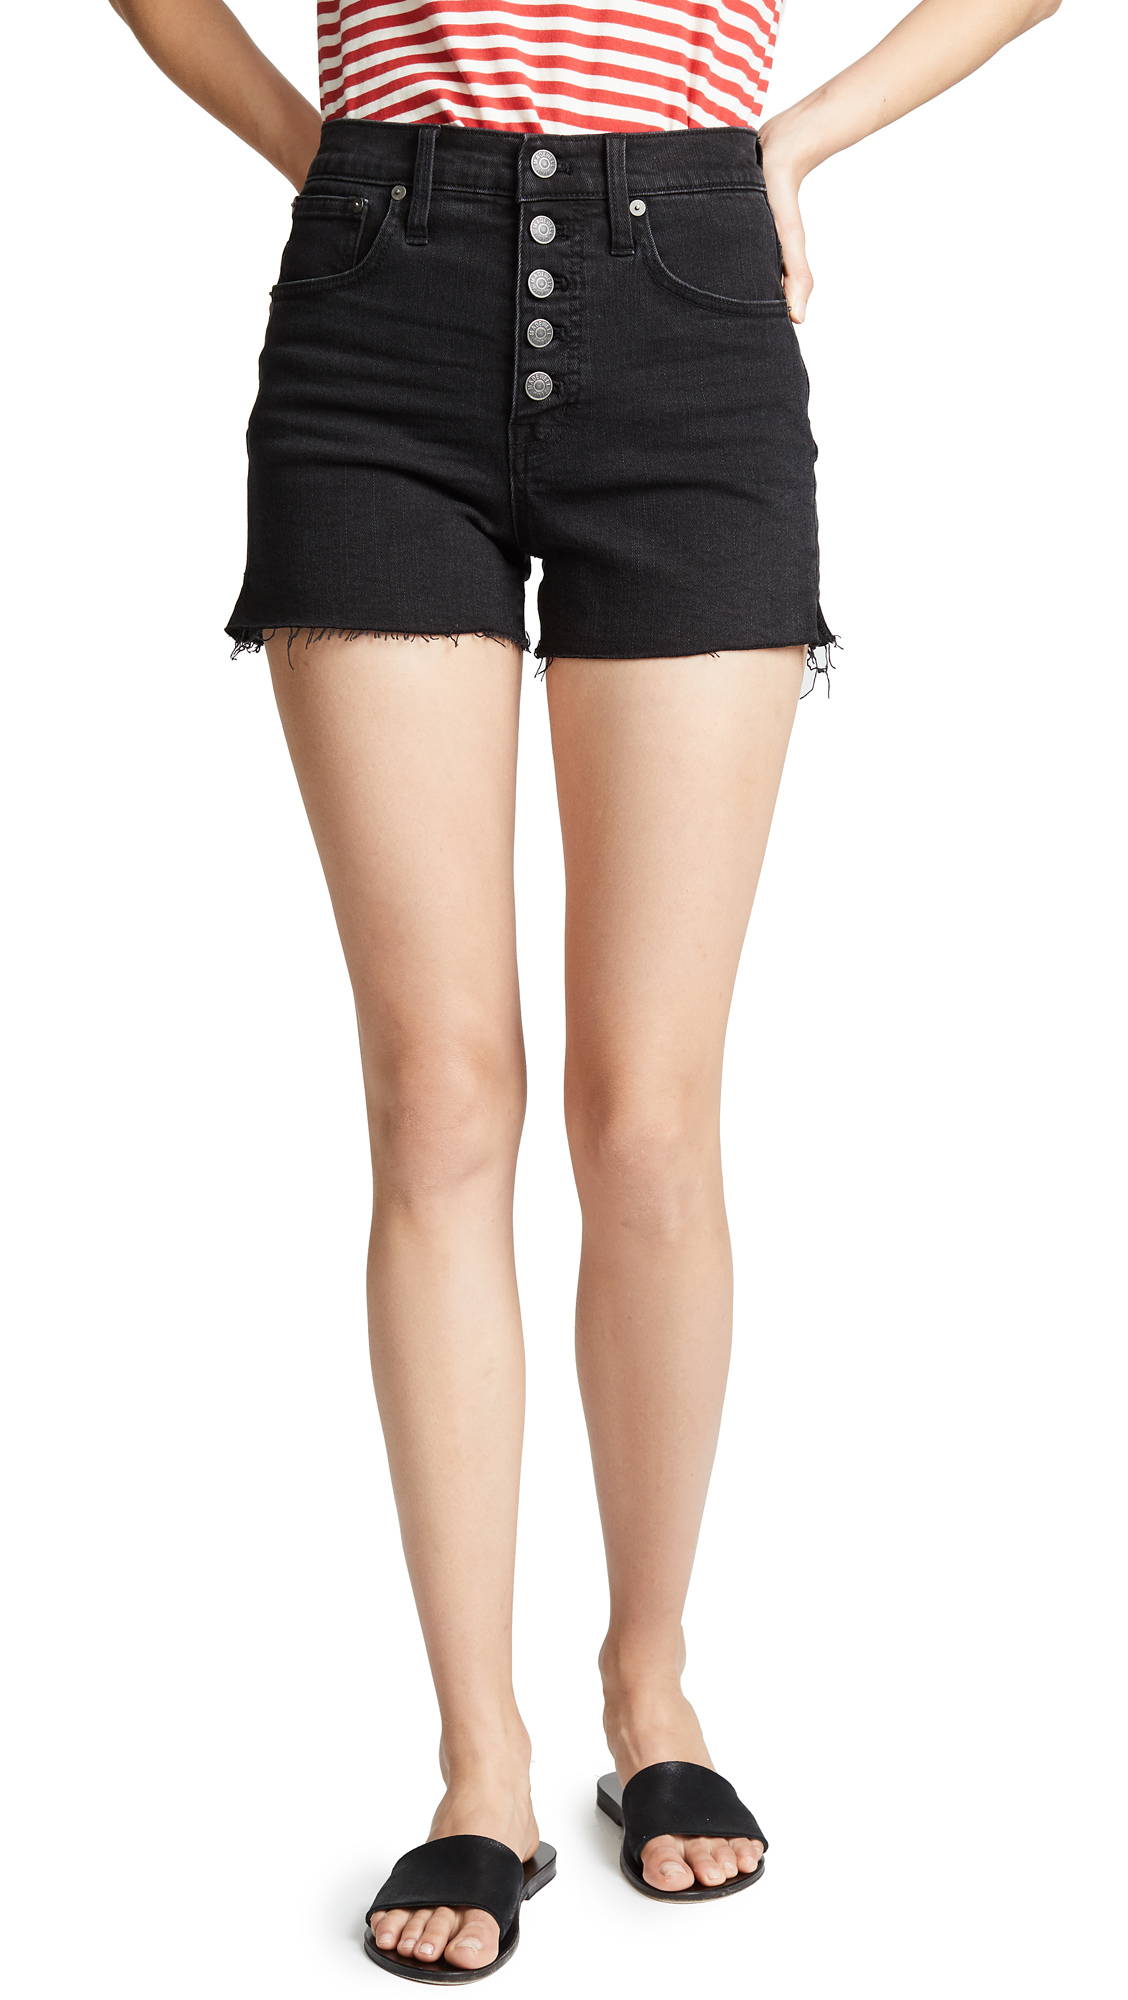 Madewell High-Rise Denim Boy Shorts In Lunar